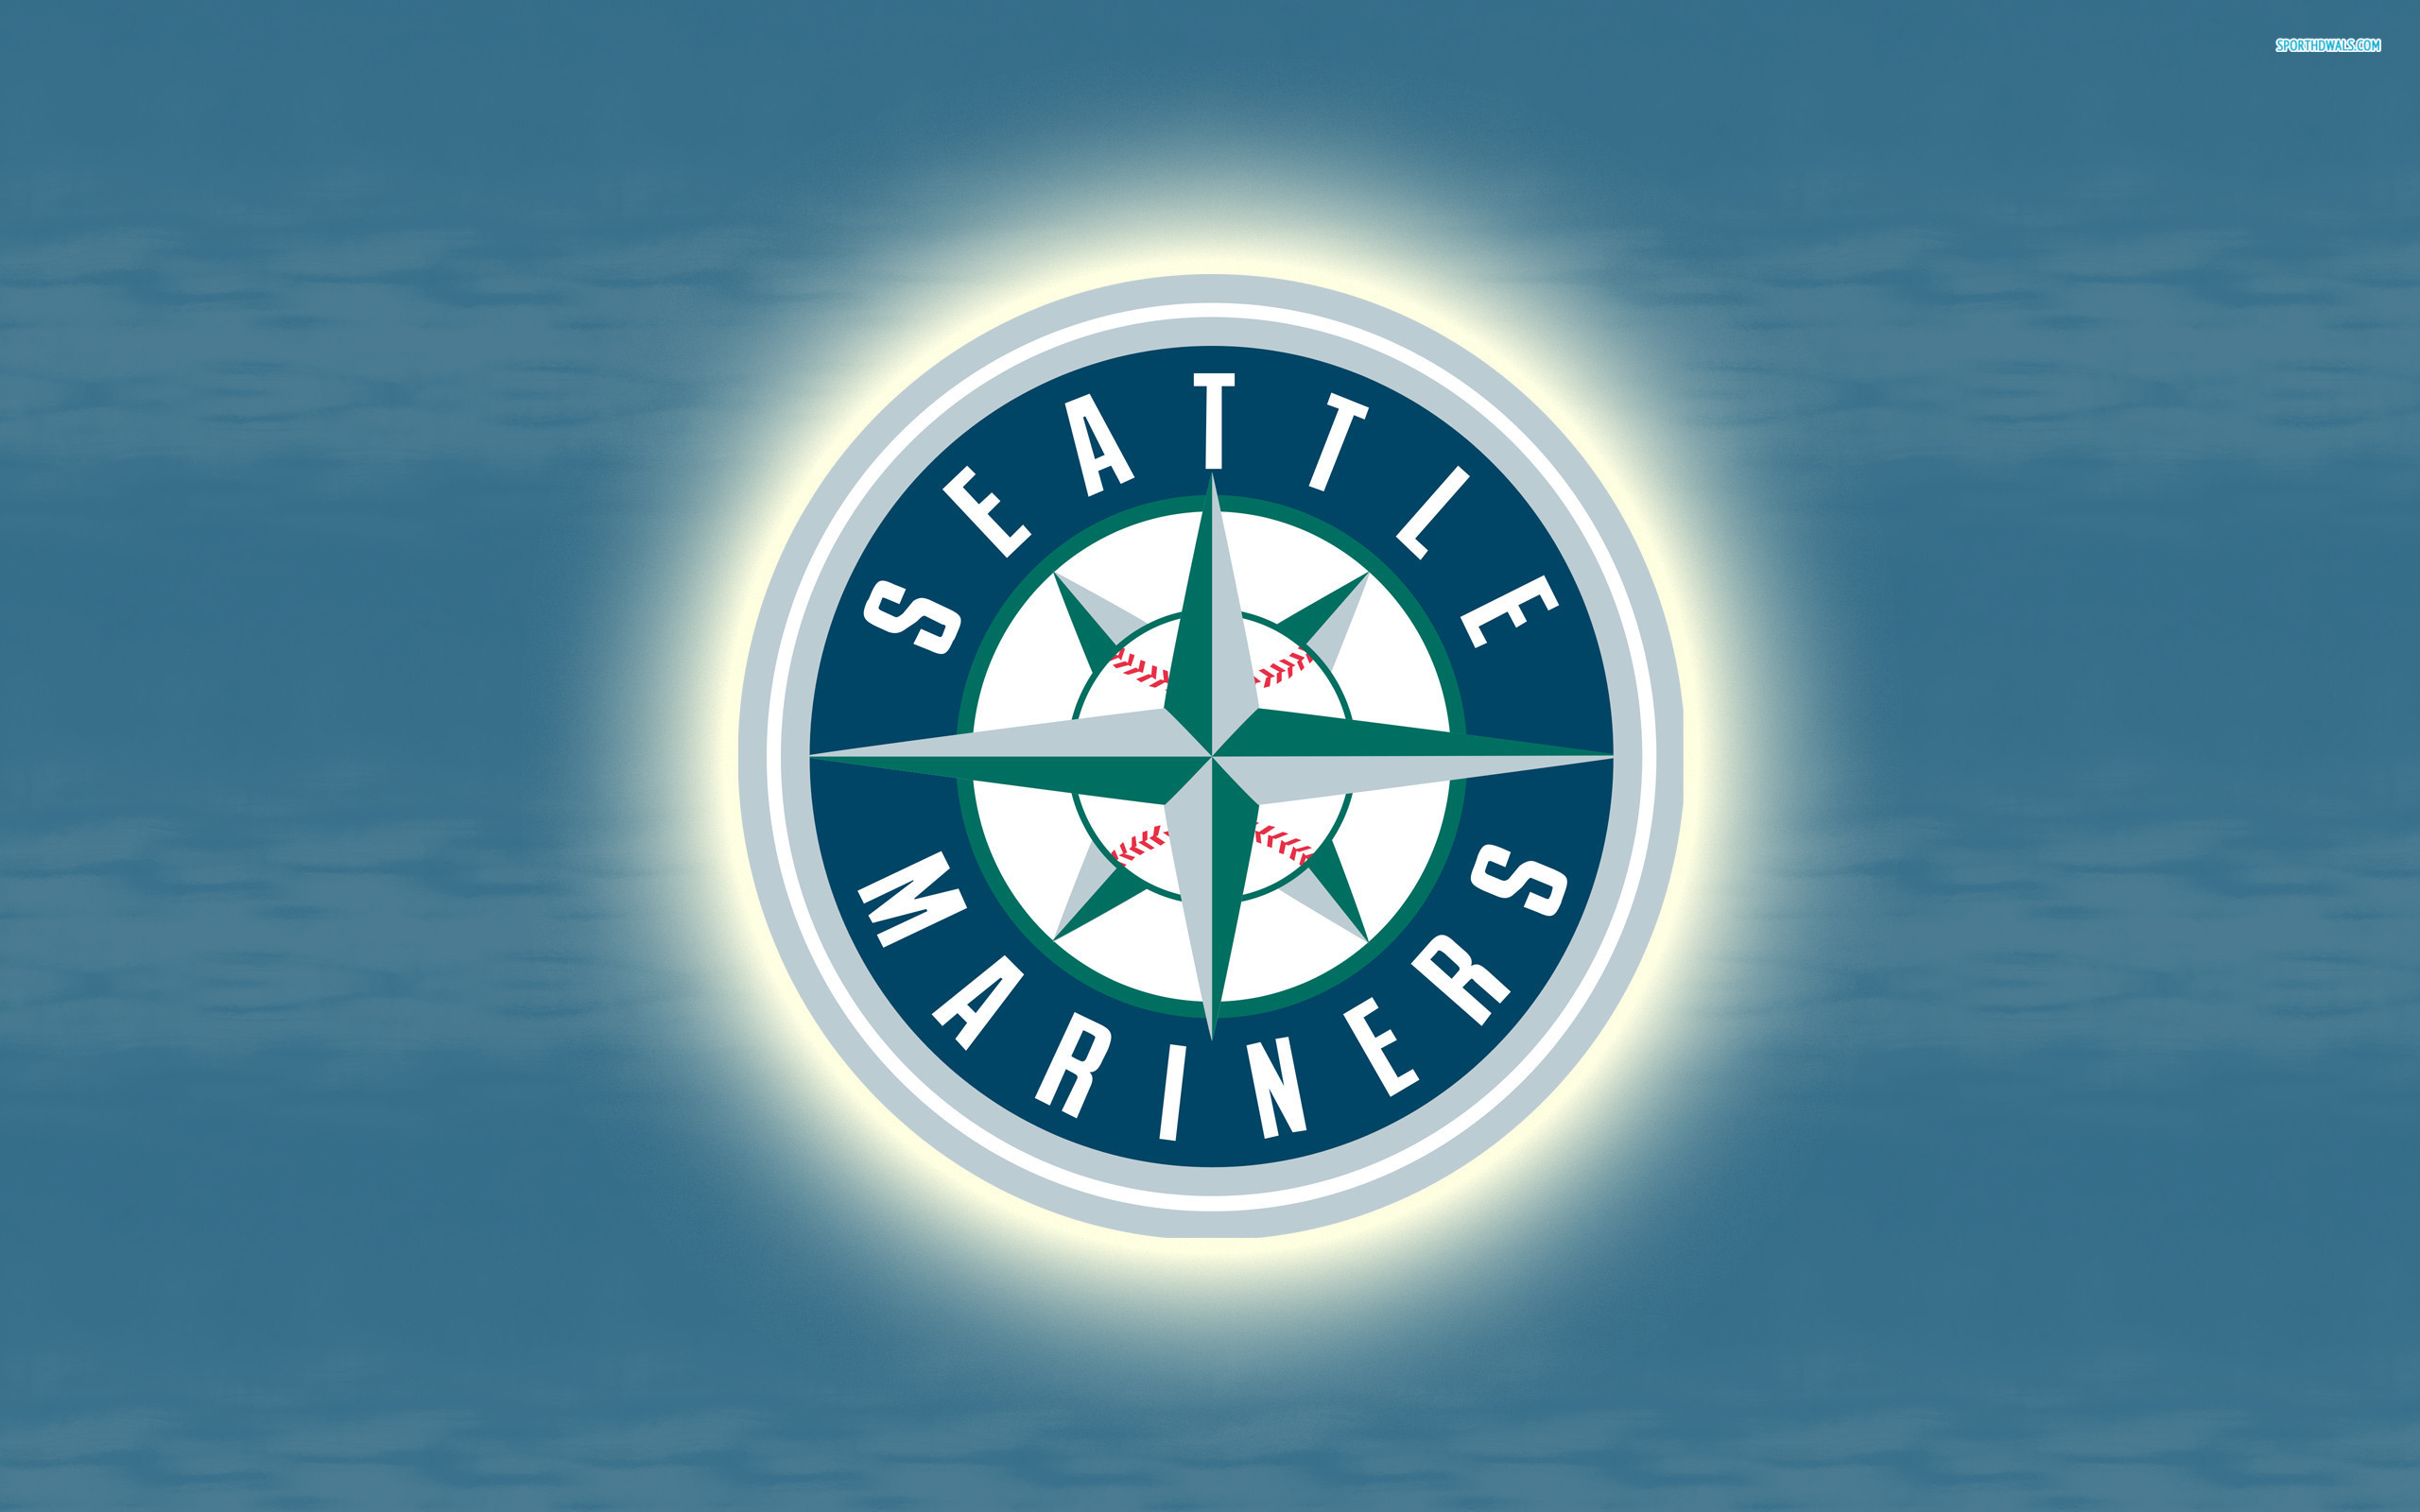 Seattle Mariners Wallpaper 2   2560 X 1600 stmednet 2560x1600